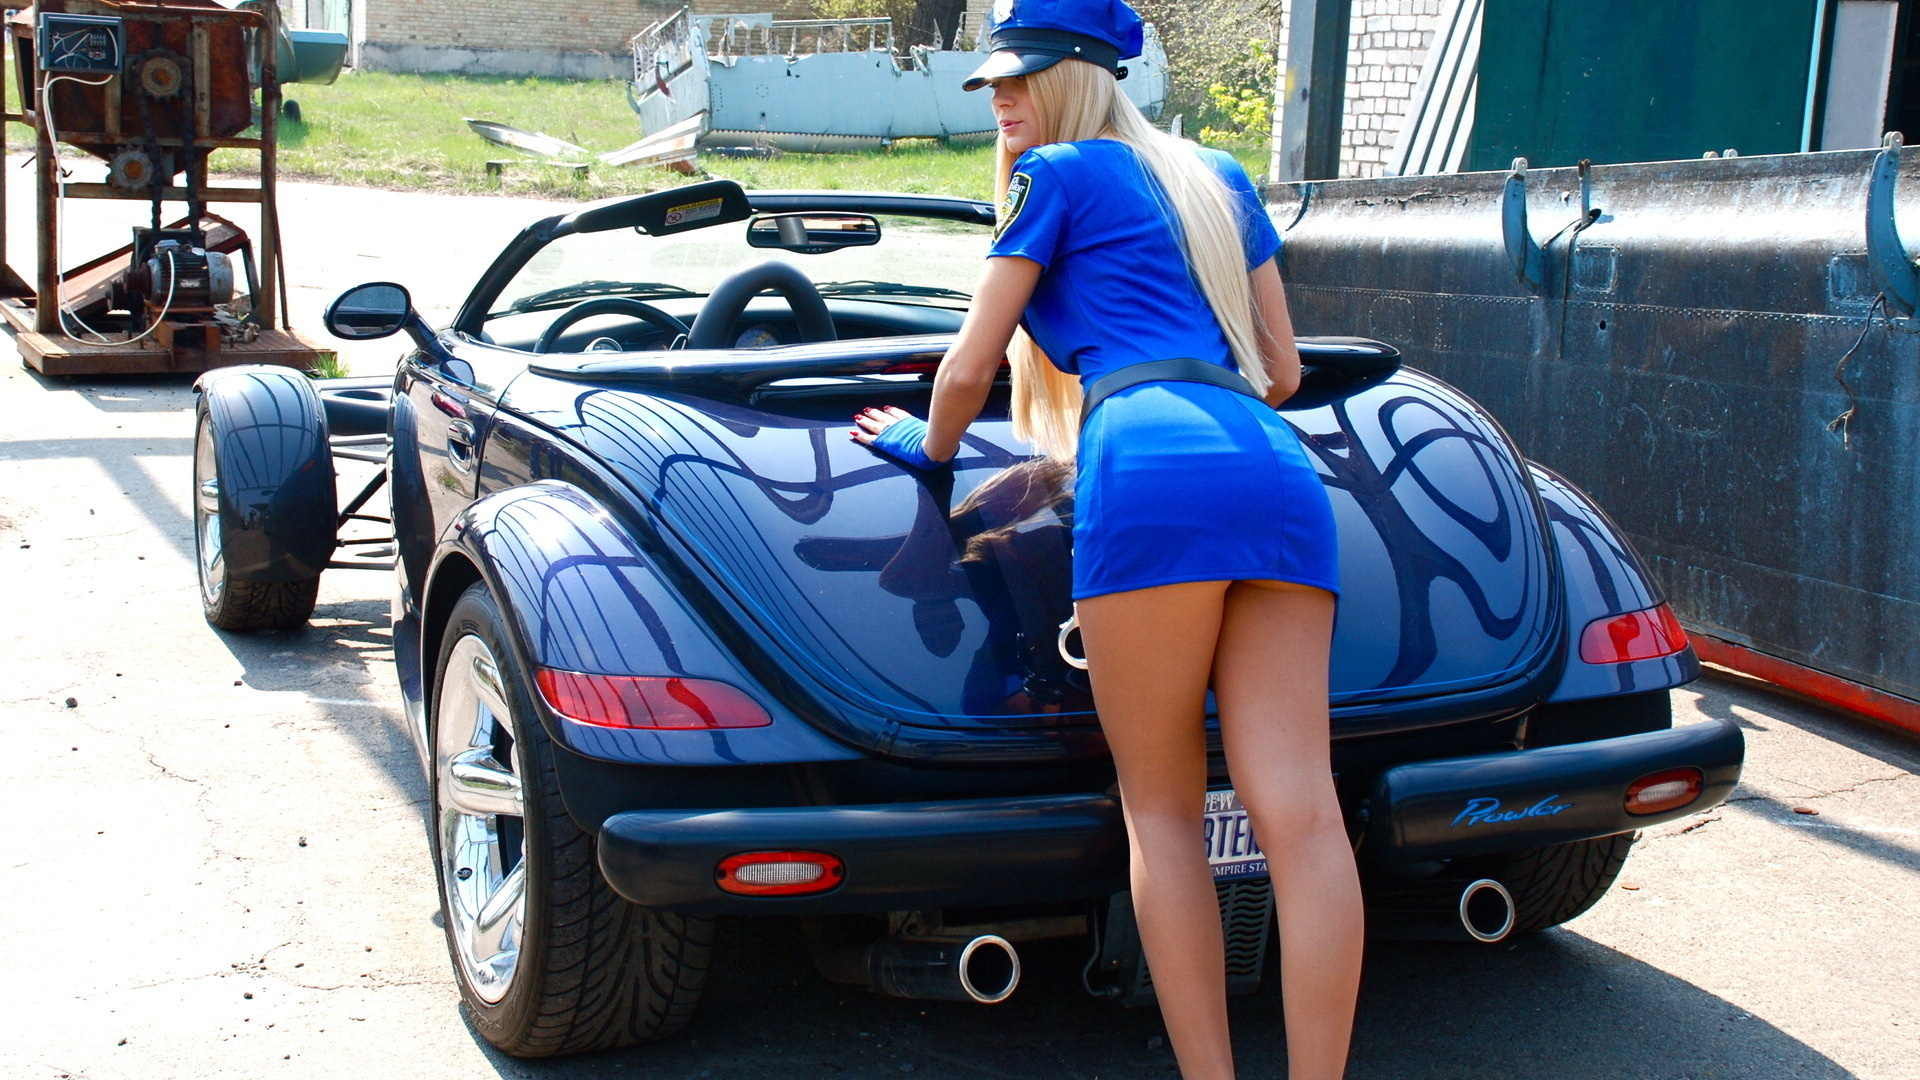 437298 as well Les Voitures Les Plus Moches De Tous Les Temps likewise Plymouth Cuda also Images besides 100011485 2008 Chrysler Sebring Convertible. on plymouth prowler hardtop